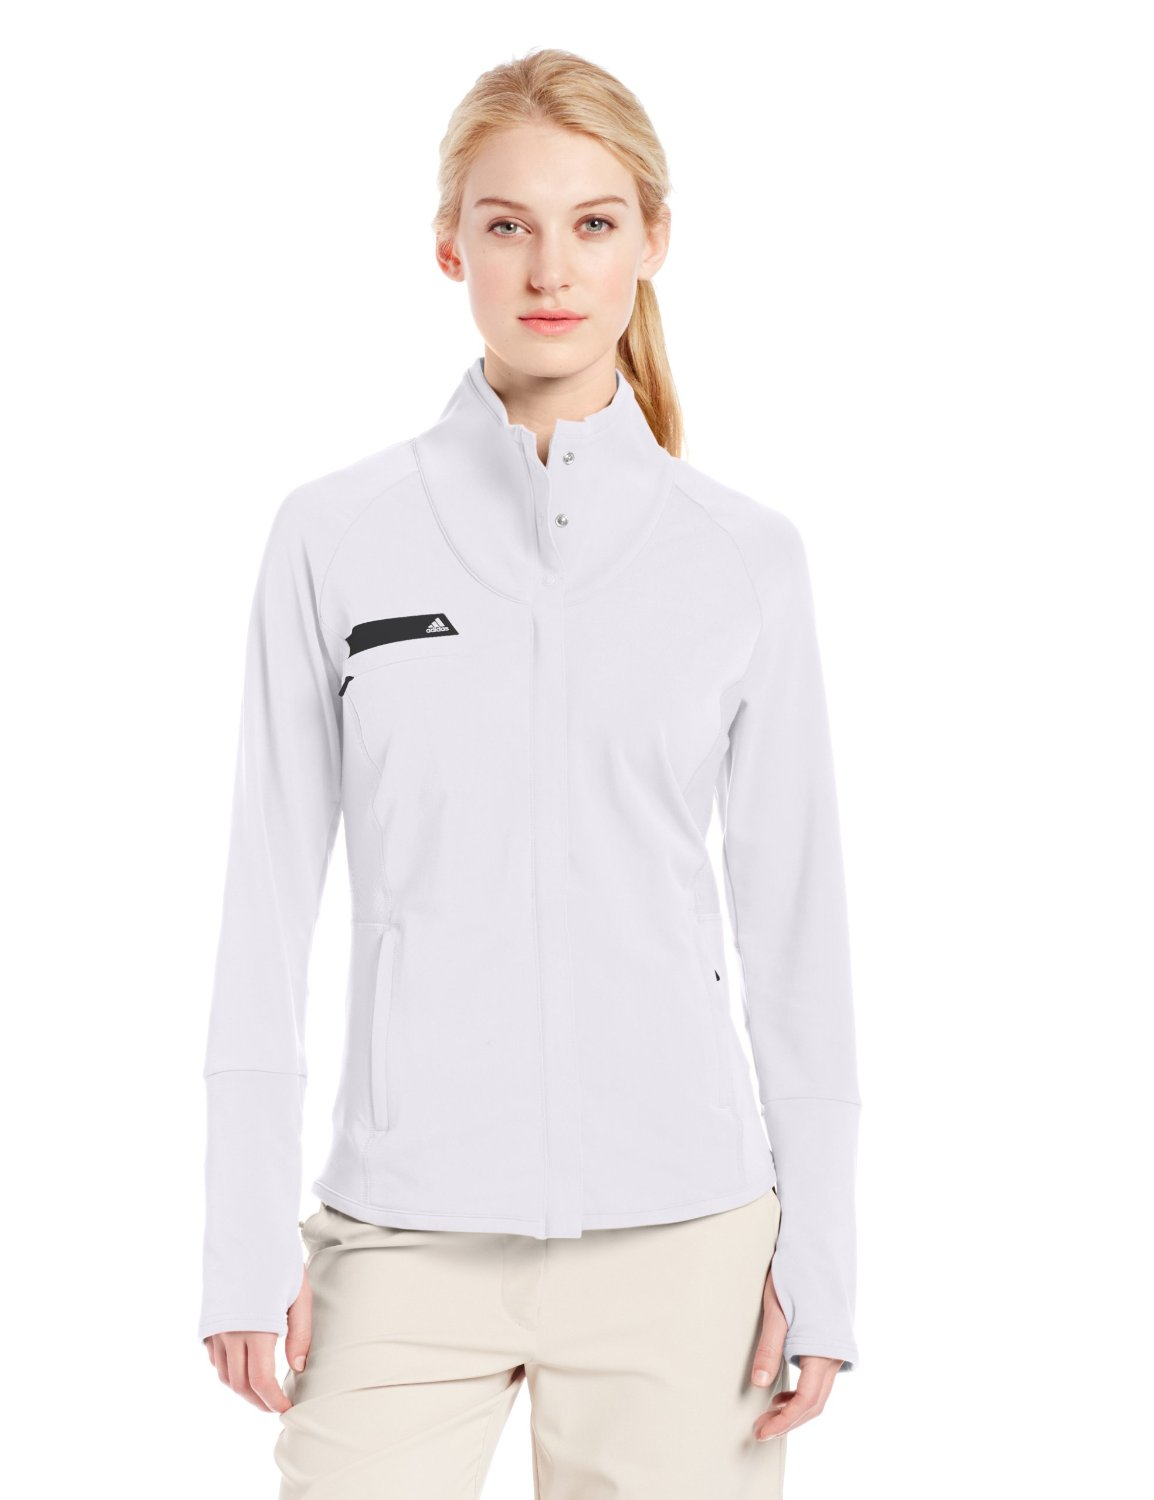 Womens Adidas Puremotion Tour Golf Jackets